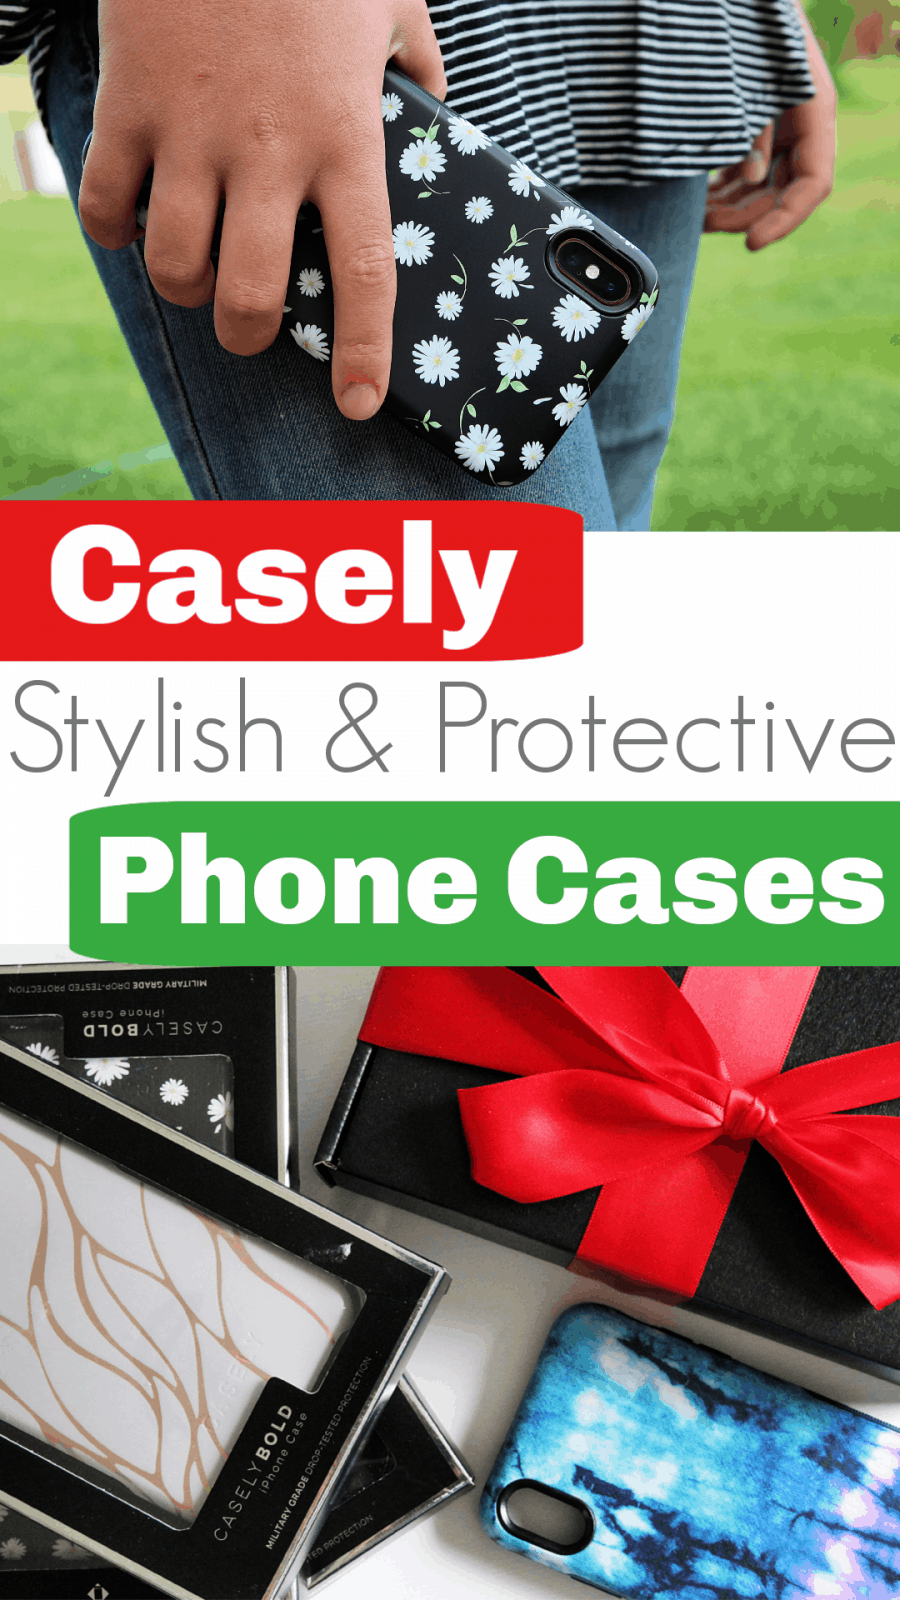 Casely Phone Cases For Christmas - Give The Gift Of Style + Protection {Sneak Peak Black Friday Sale Info!} 10